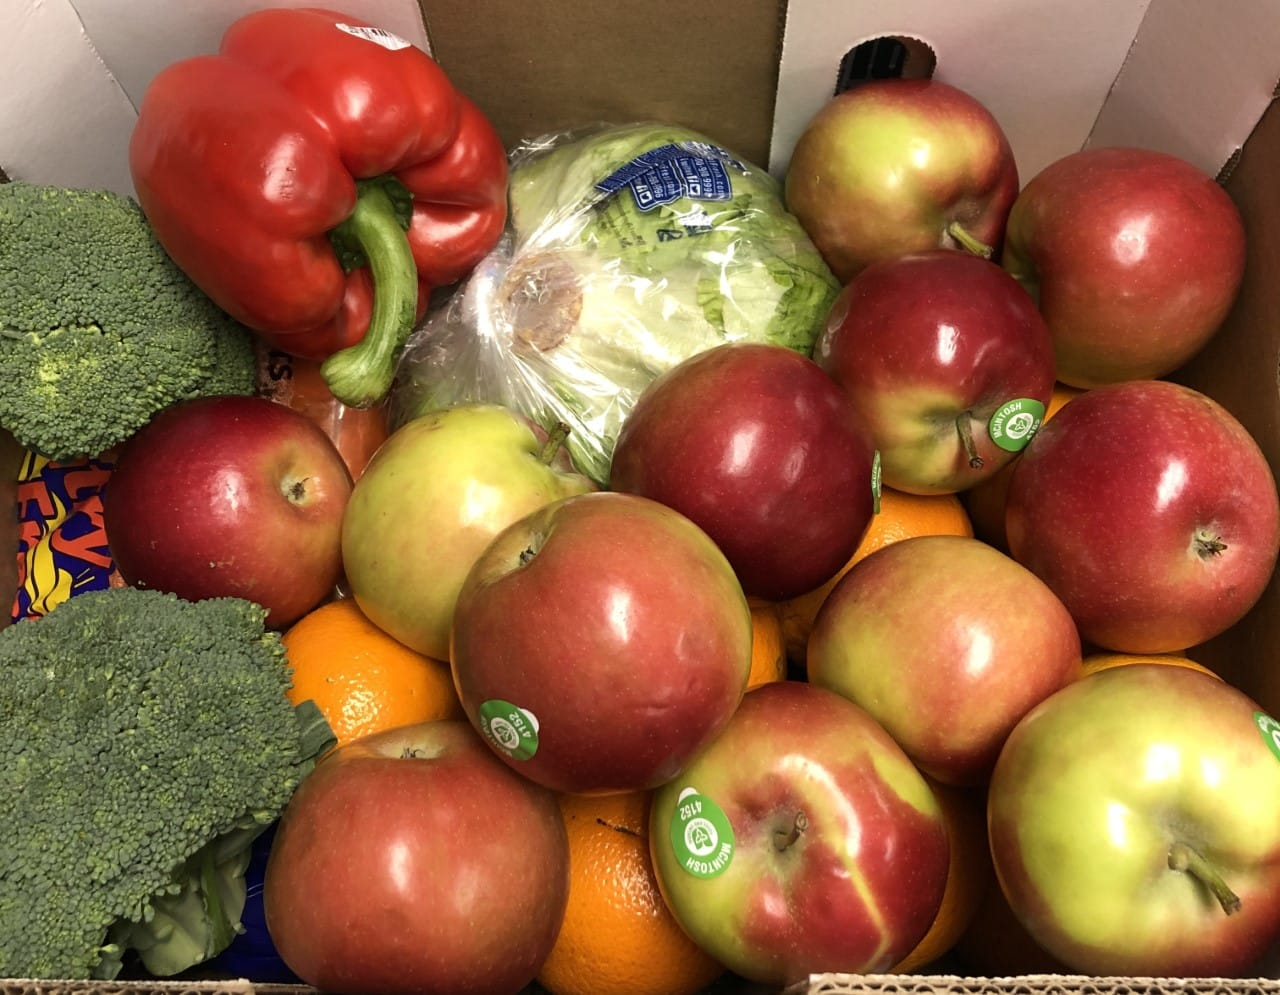 Apples, peppers, lettuce, oranges, and broccoli in a box